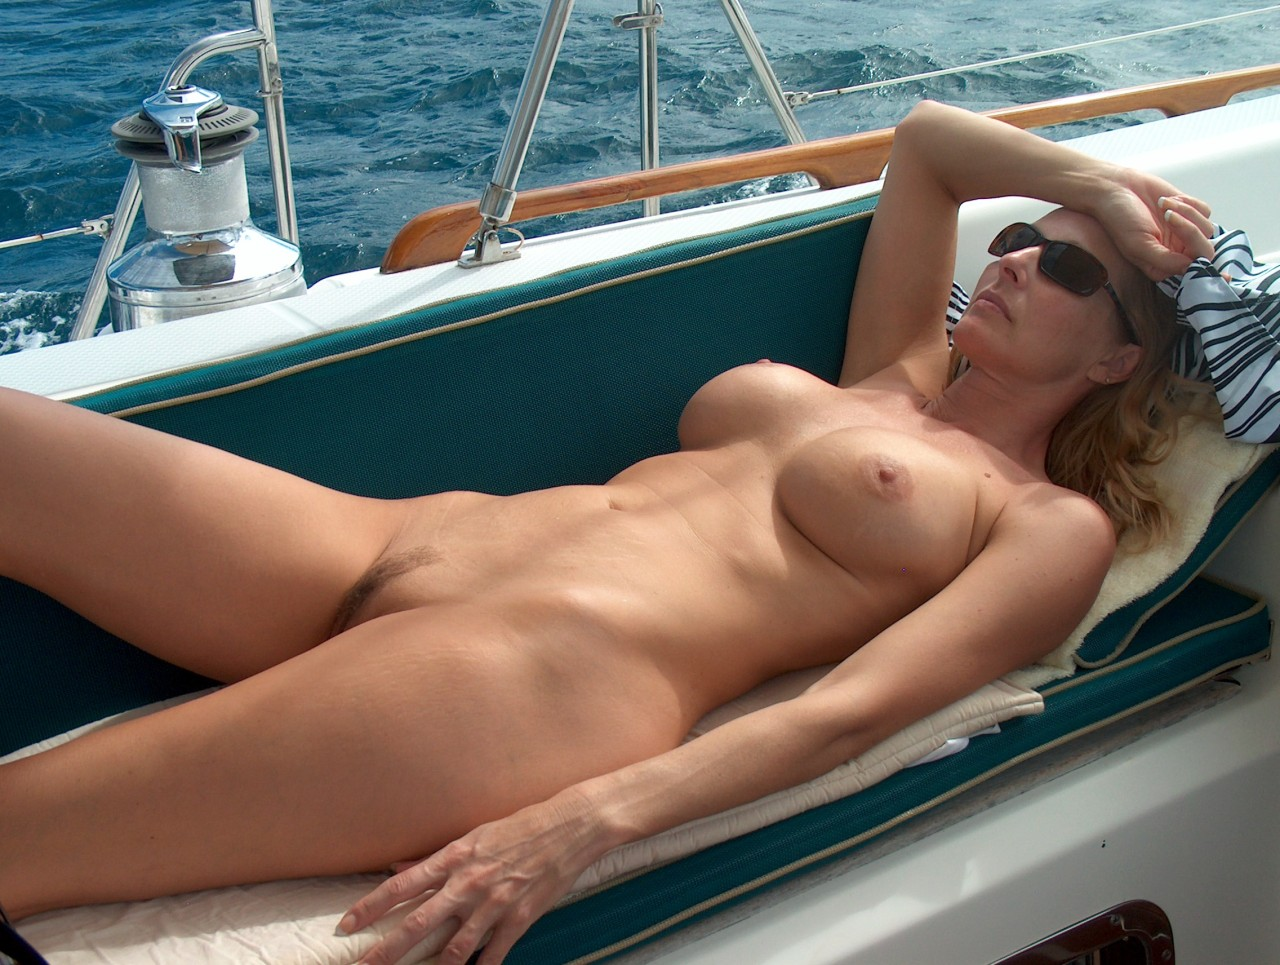 amateur sex on a boat tumblr